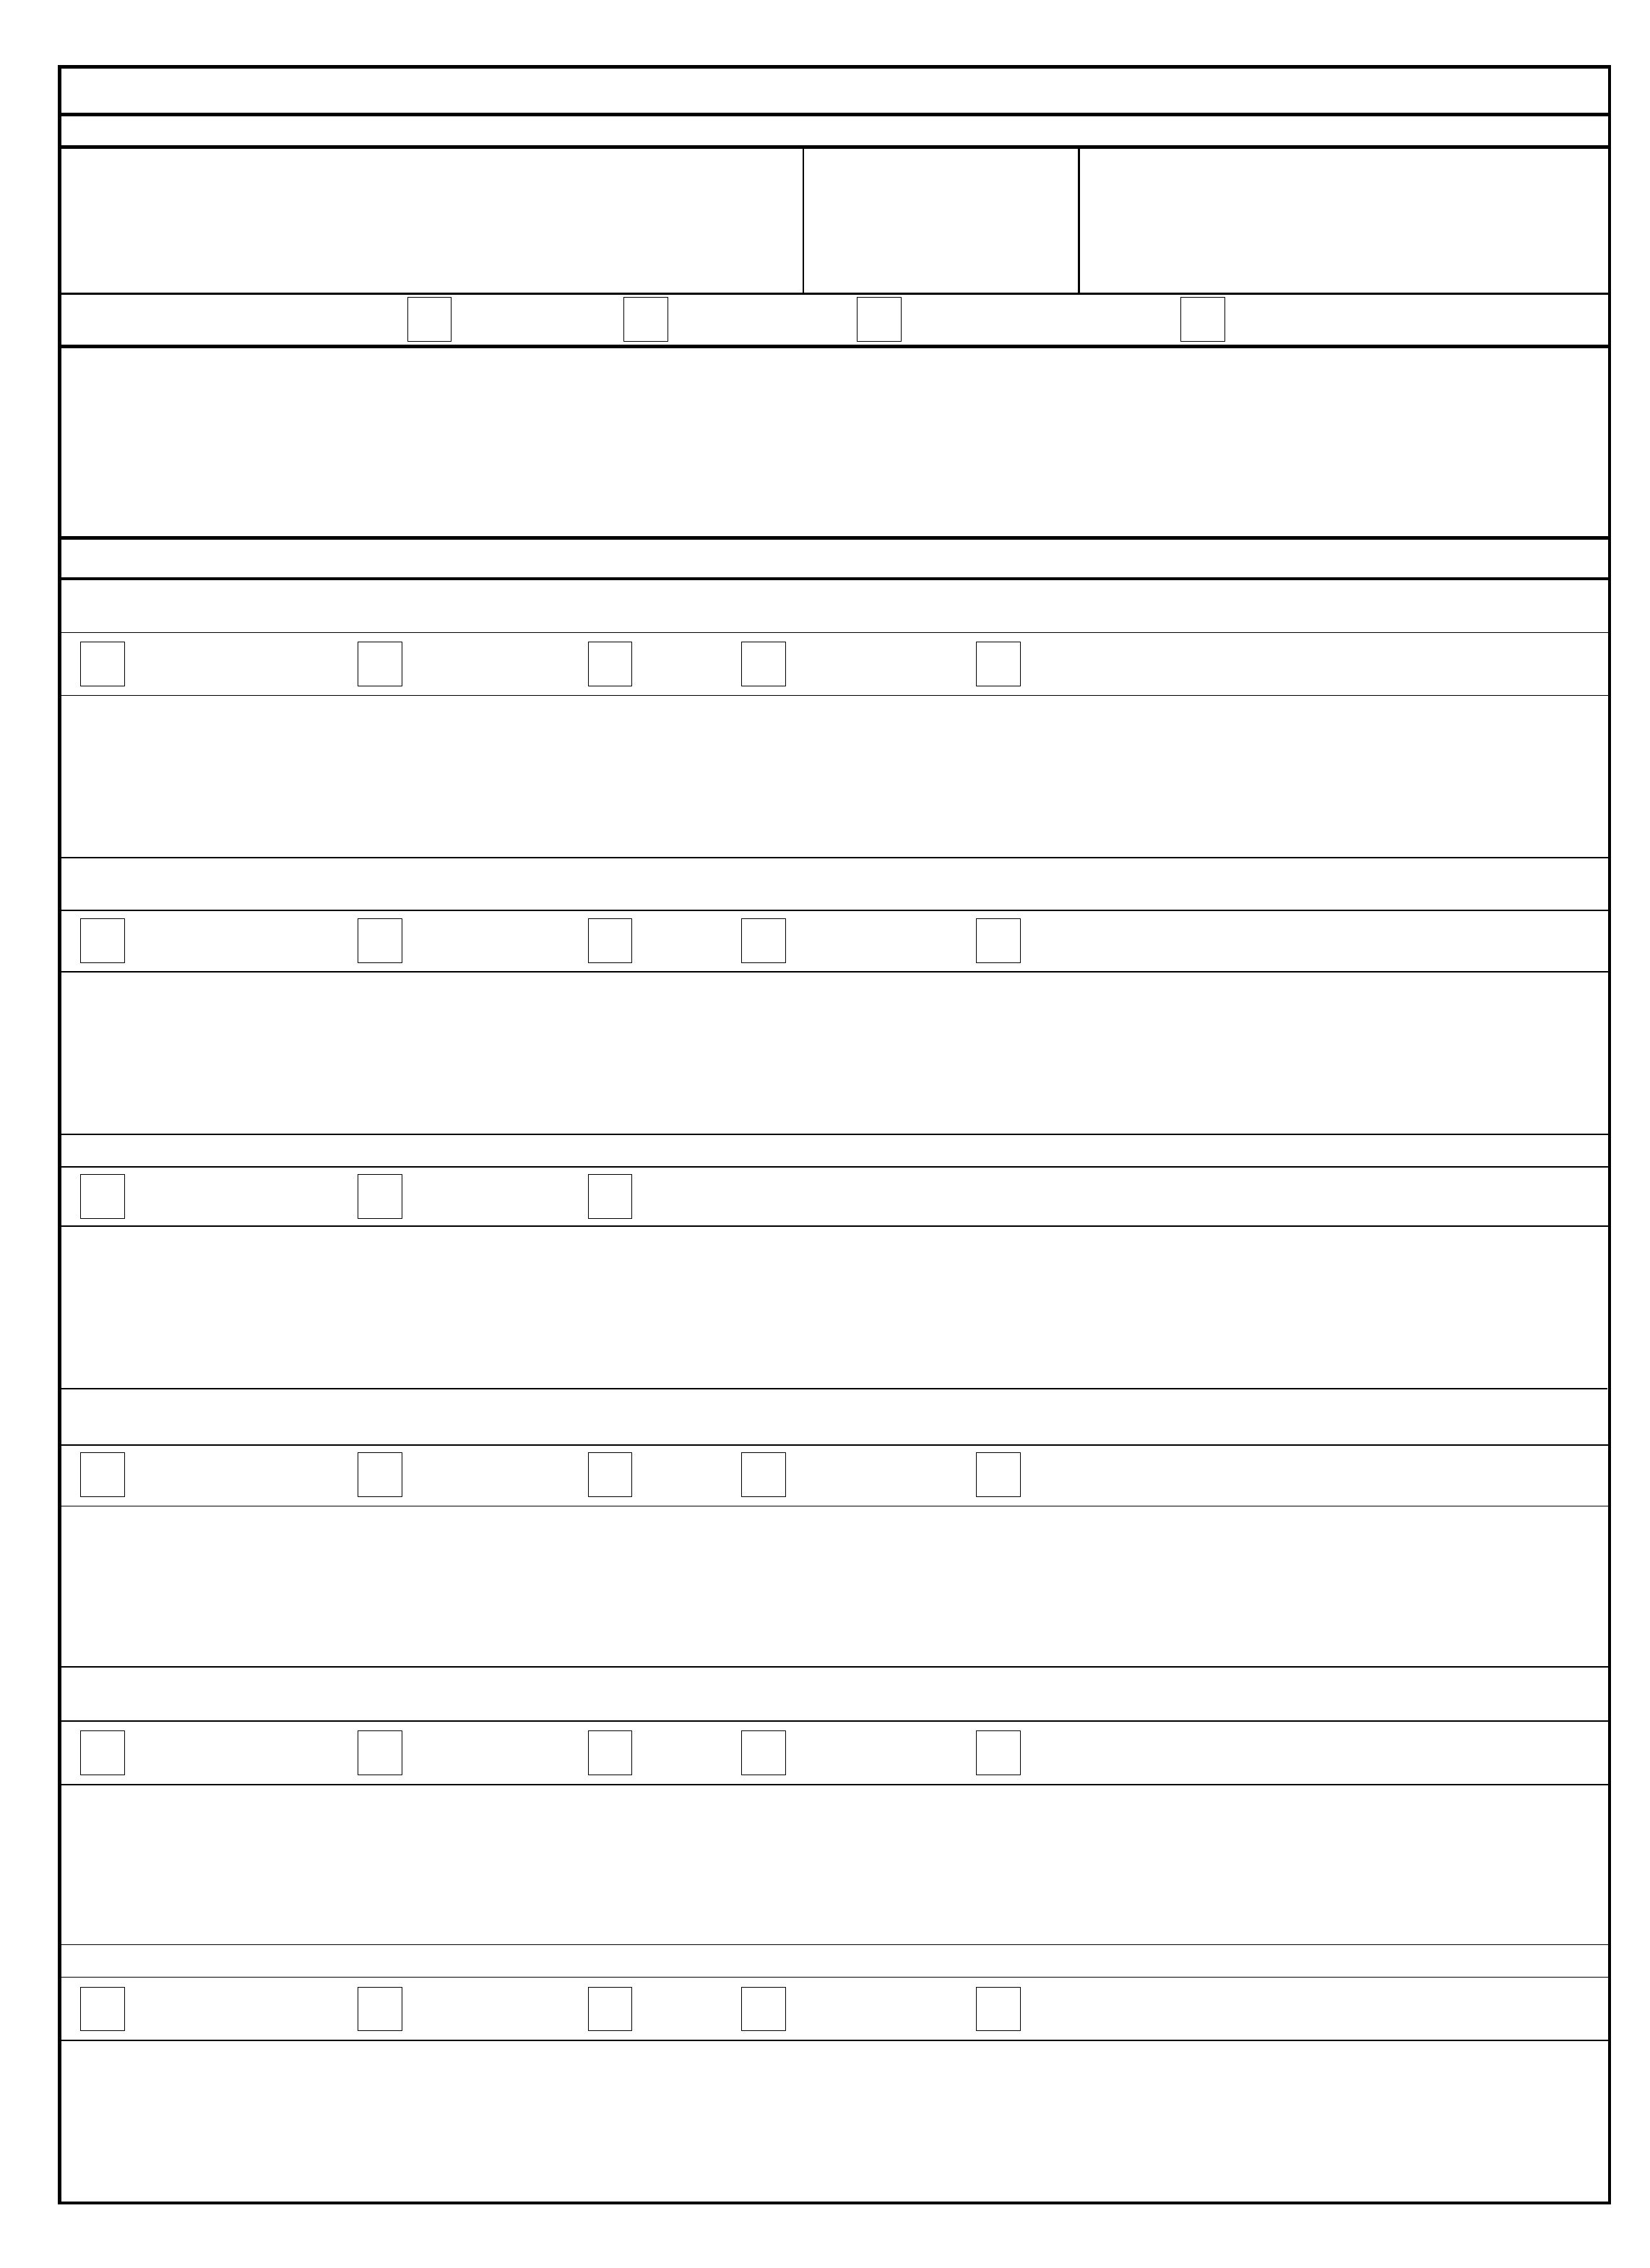 Printables Performance Feedback Worksheet performance feedback worksheet free download